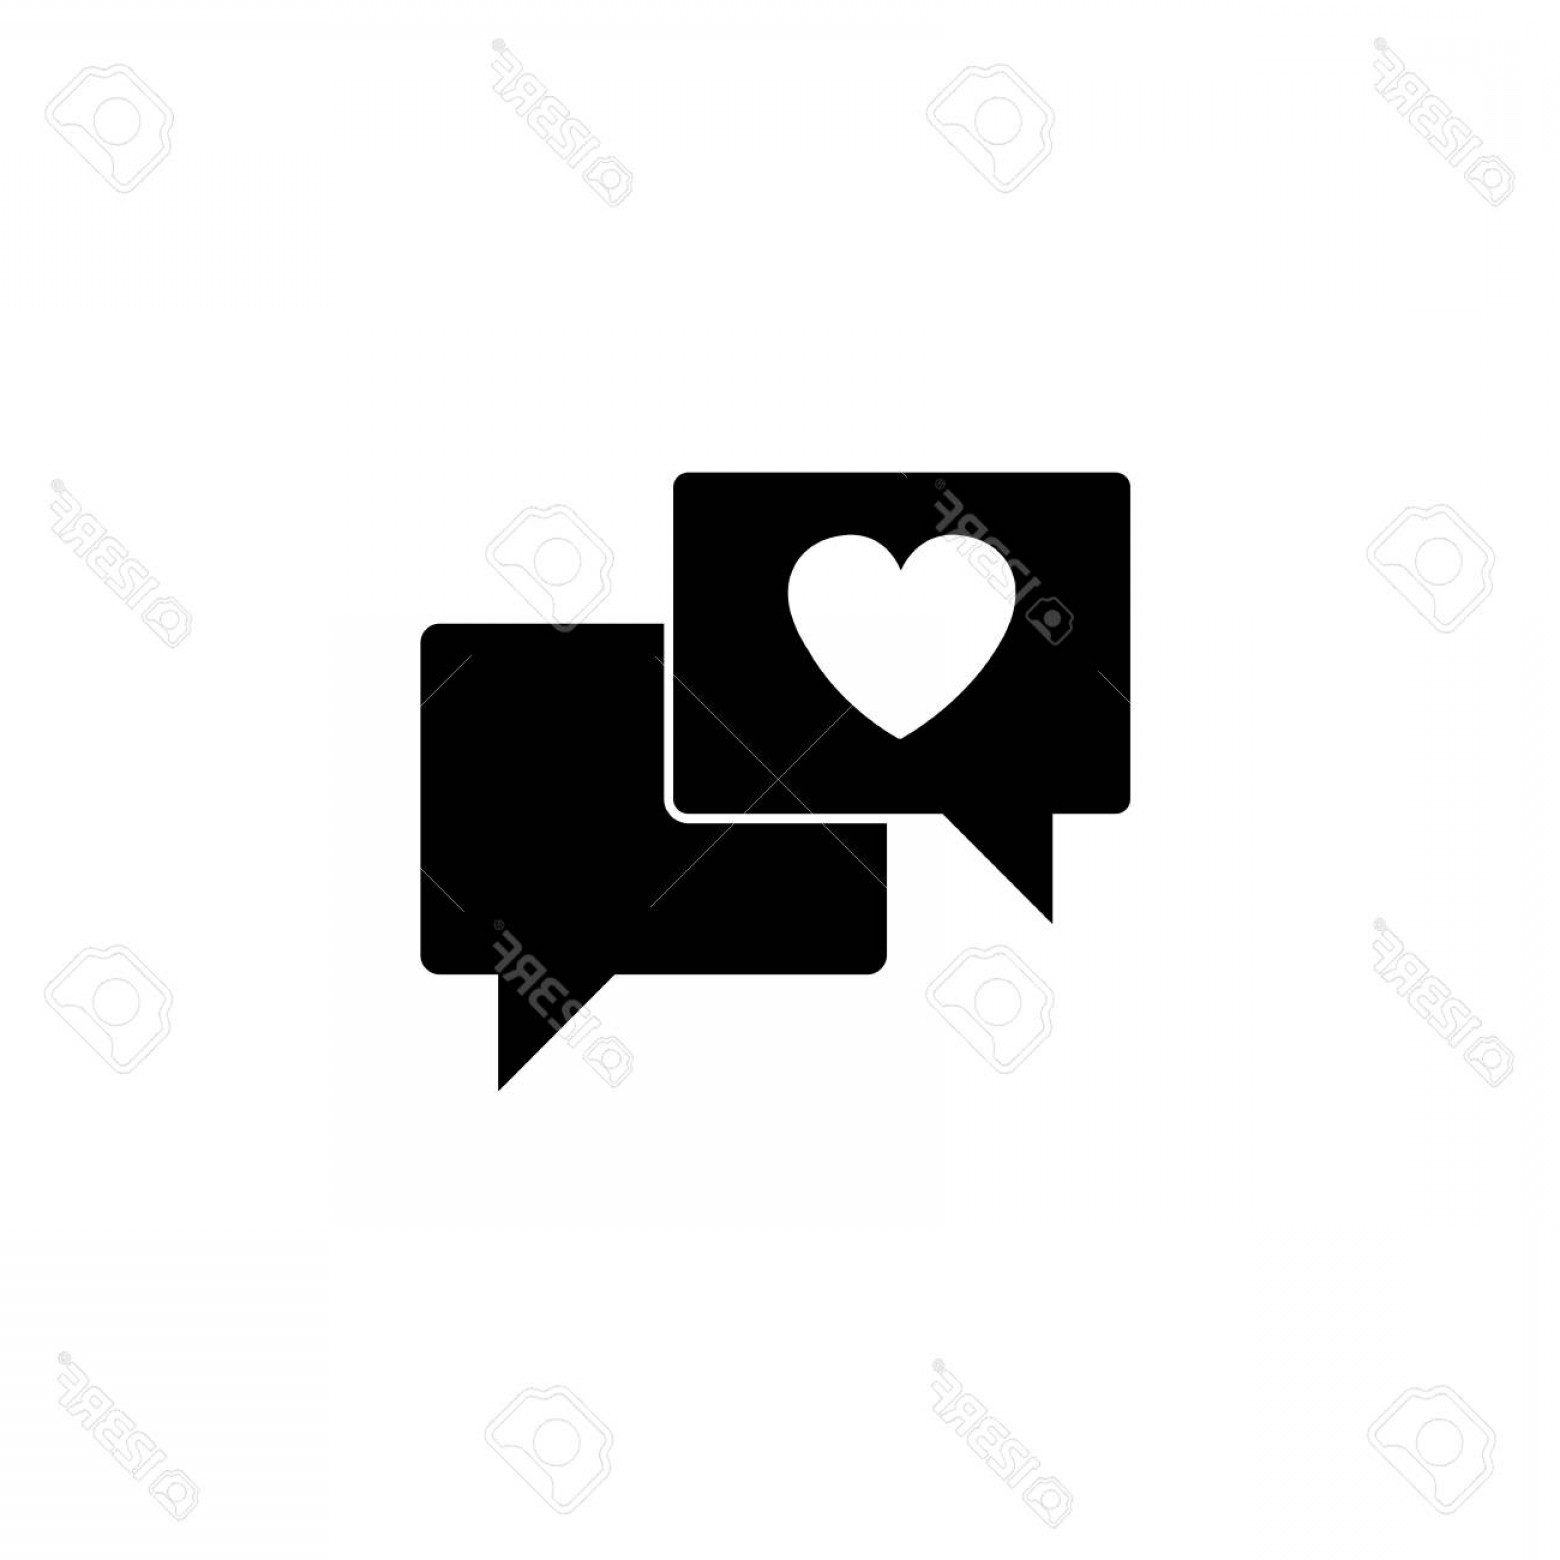 Solid Heart Vector Drawing: Photostock Vector Love Chat Solid Icon Heart In Speech Bubble Vector Graphics A Filled Pattern On A White Background E